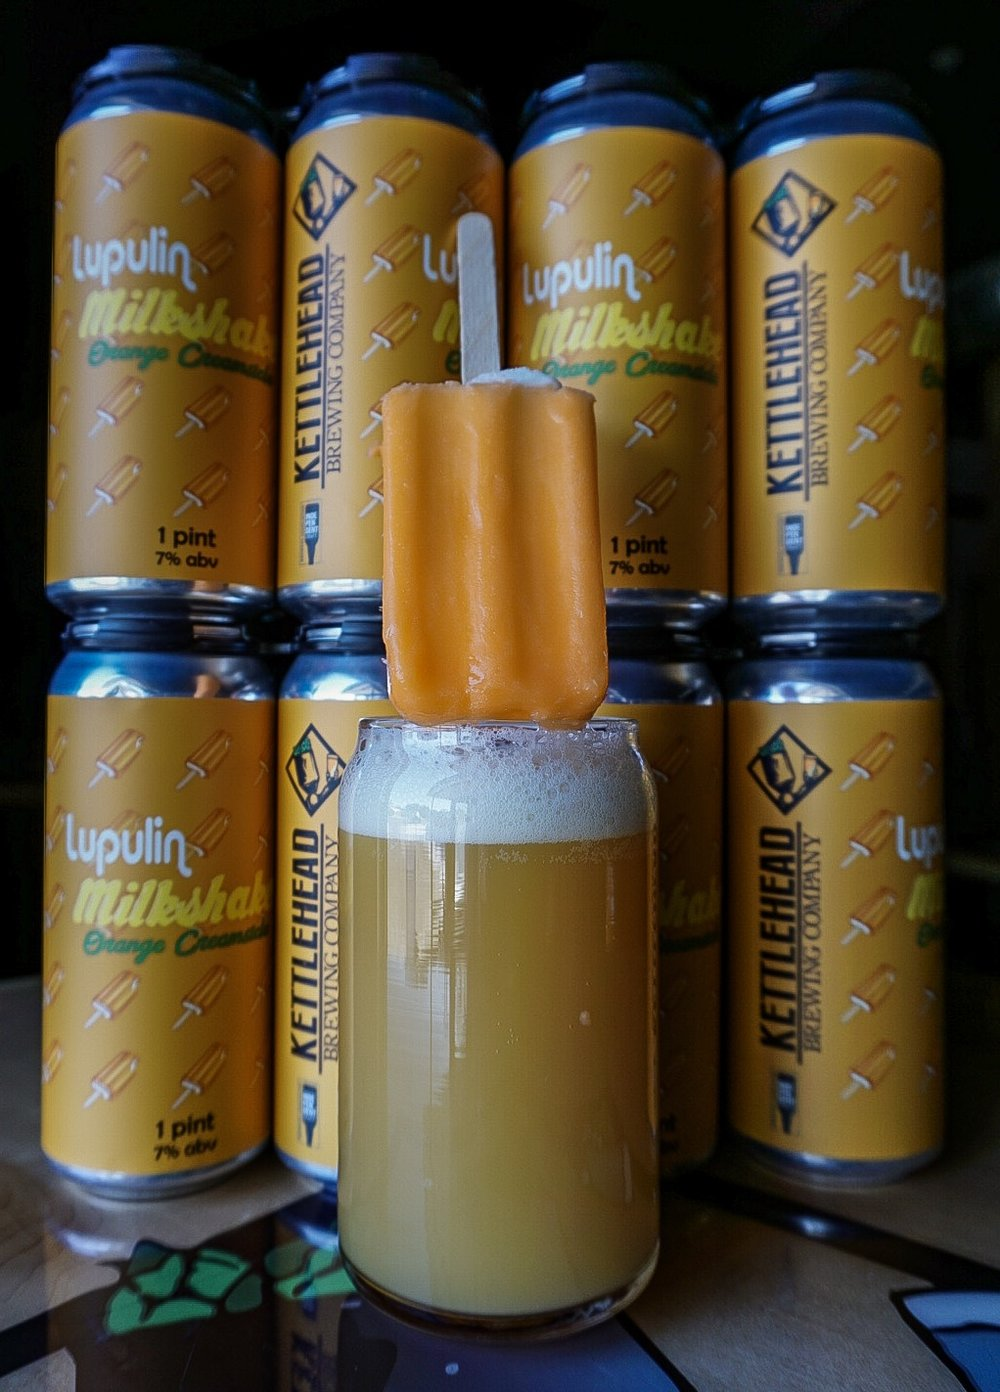 Lupulin Milkshake, Orange Creamsicle, 7% - Fruited with citrus fruits, milk sugar, and vanilla beans. Hopped with Citra, Mandarin Bavaria, and Pacifica hops.